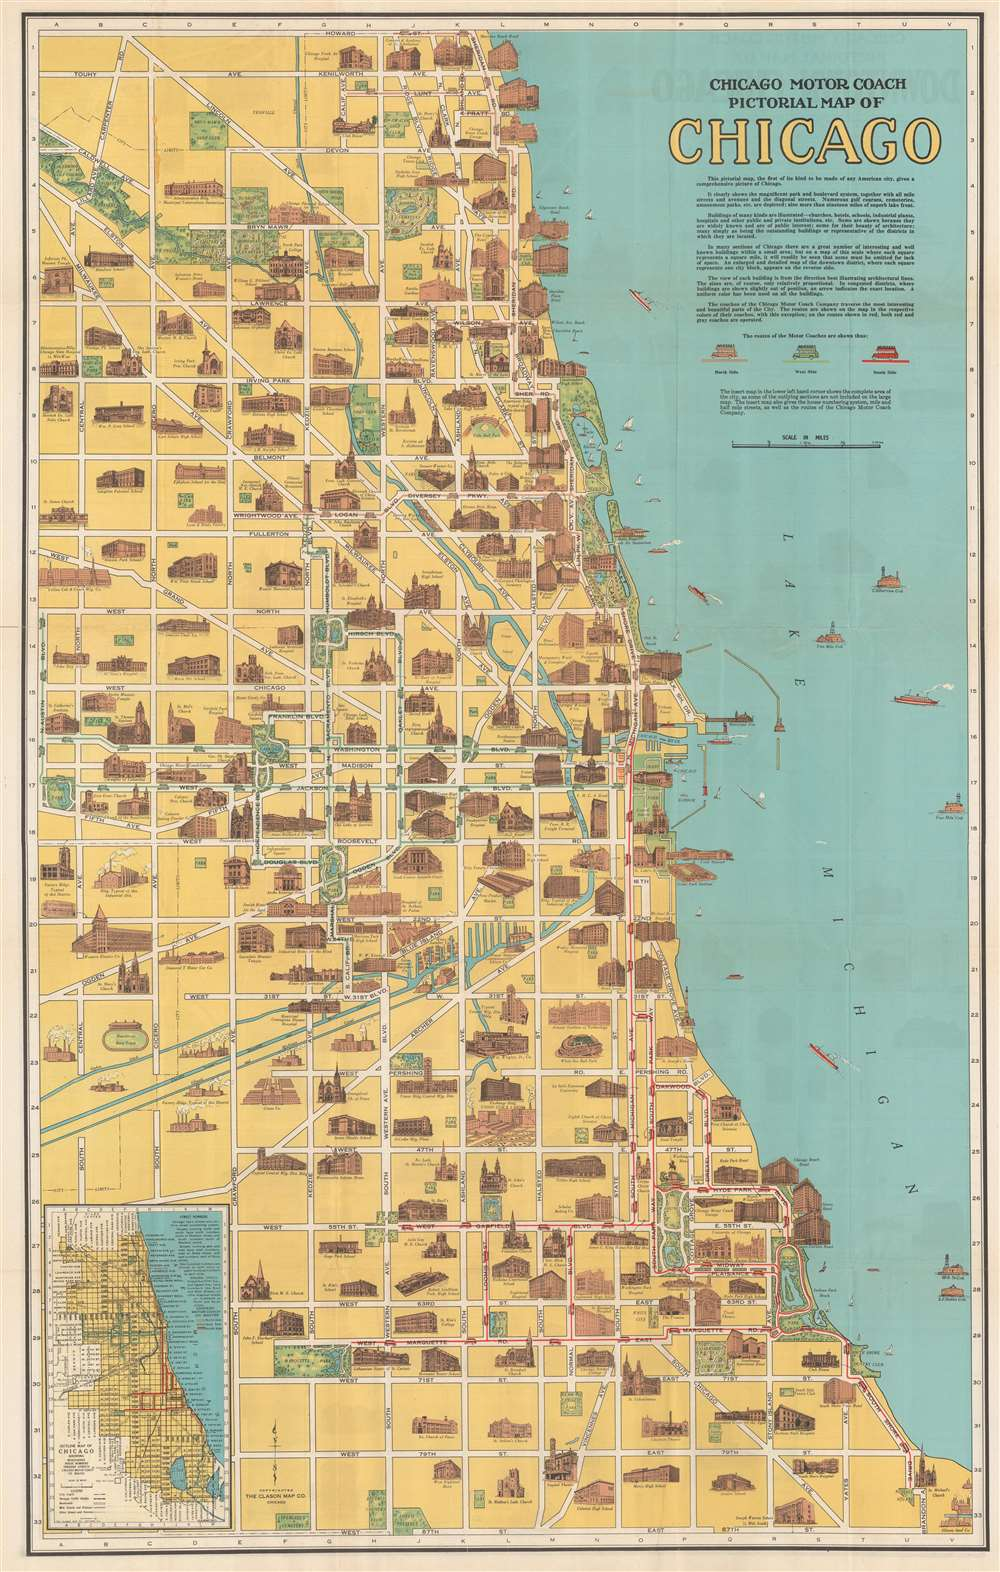 Chicago Motor Coach Pictorial Map of Chicago. - Main View